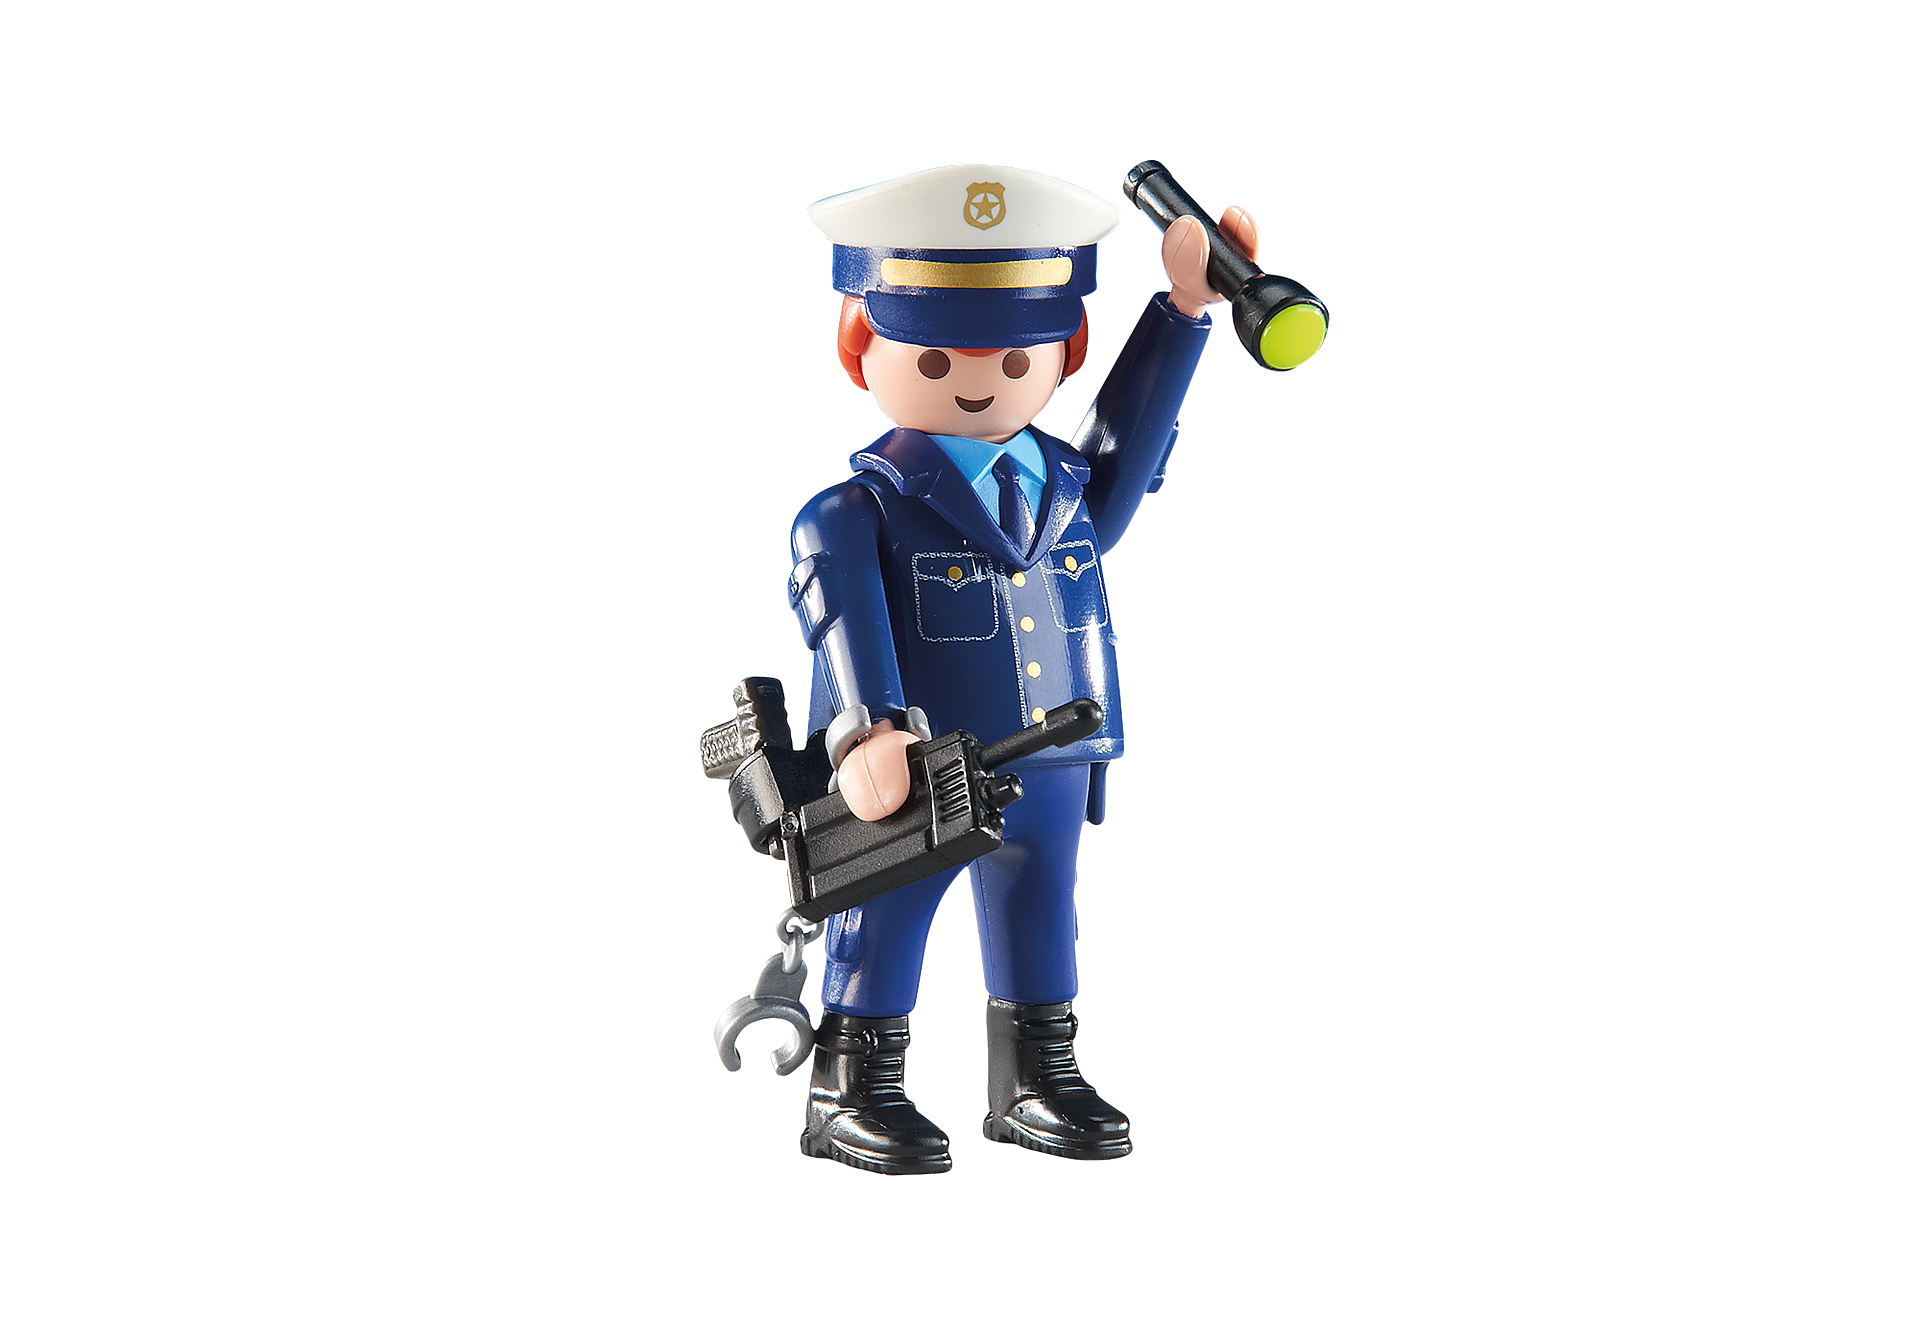 http://media.playmobil.com/i/playmobil/6502_product_detail/Chef des policiers